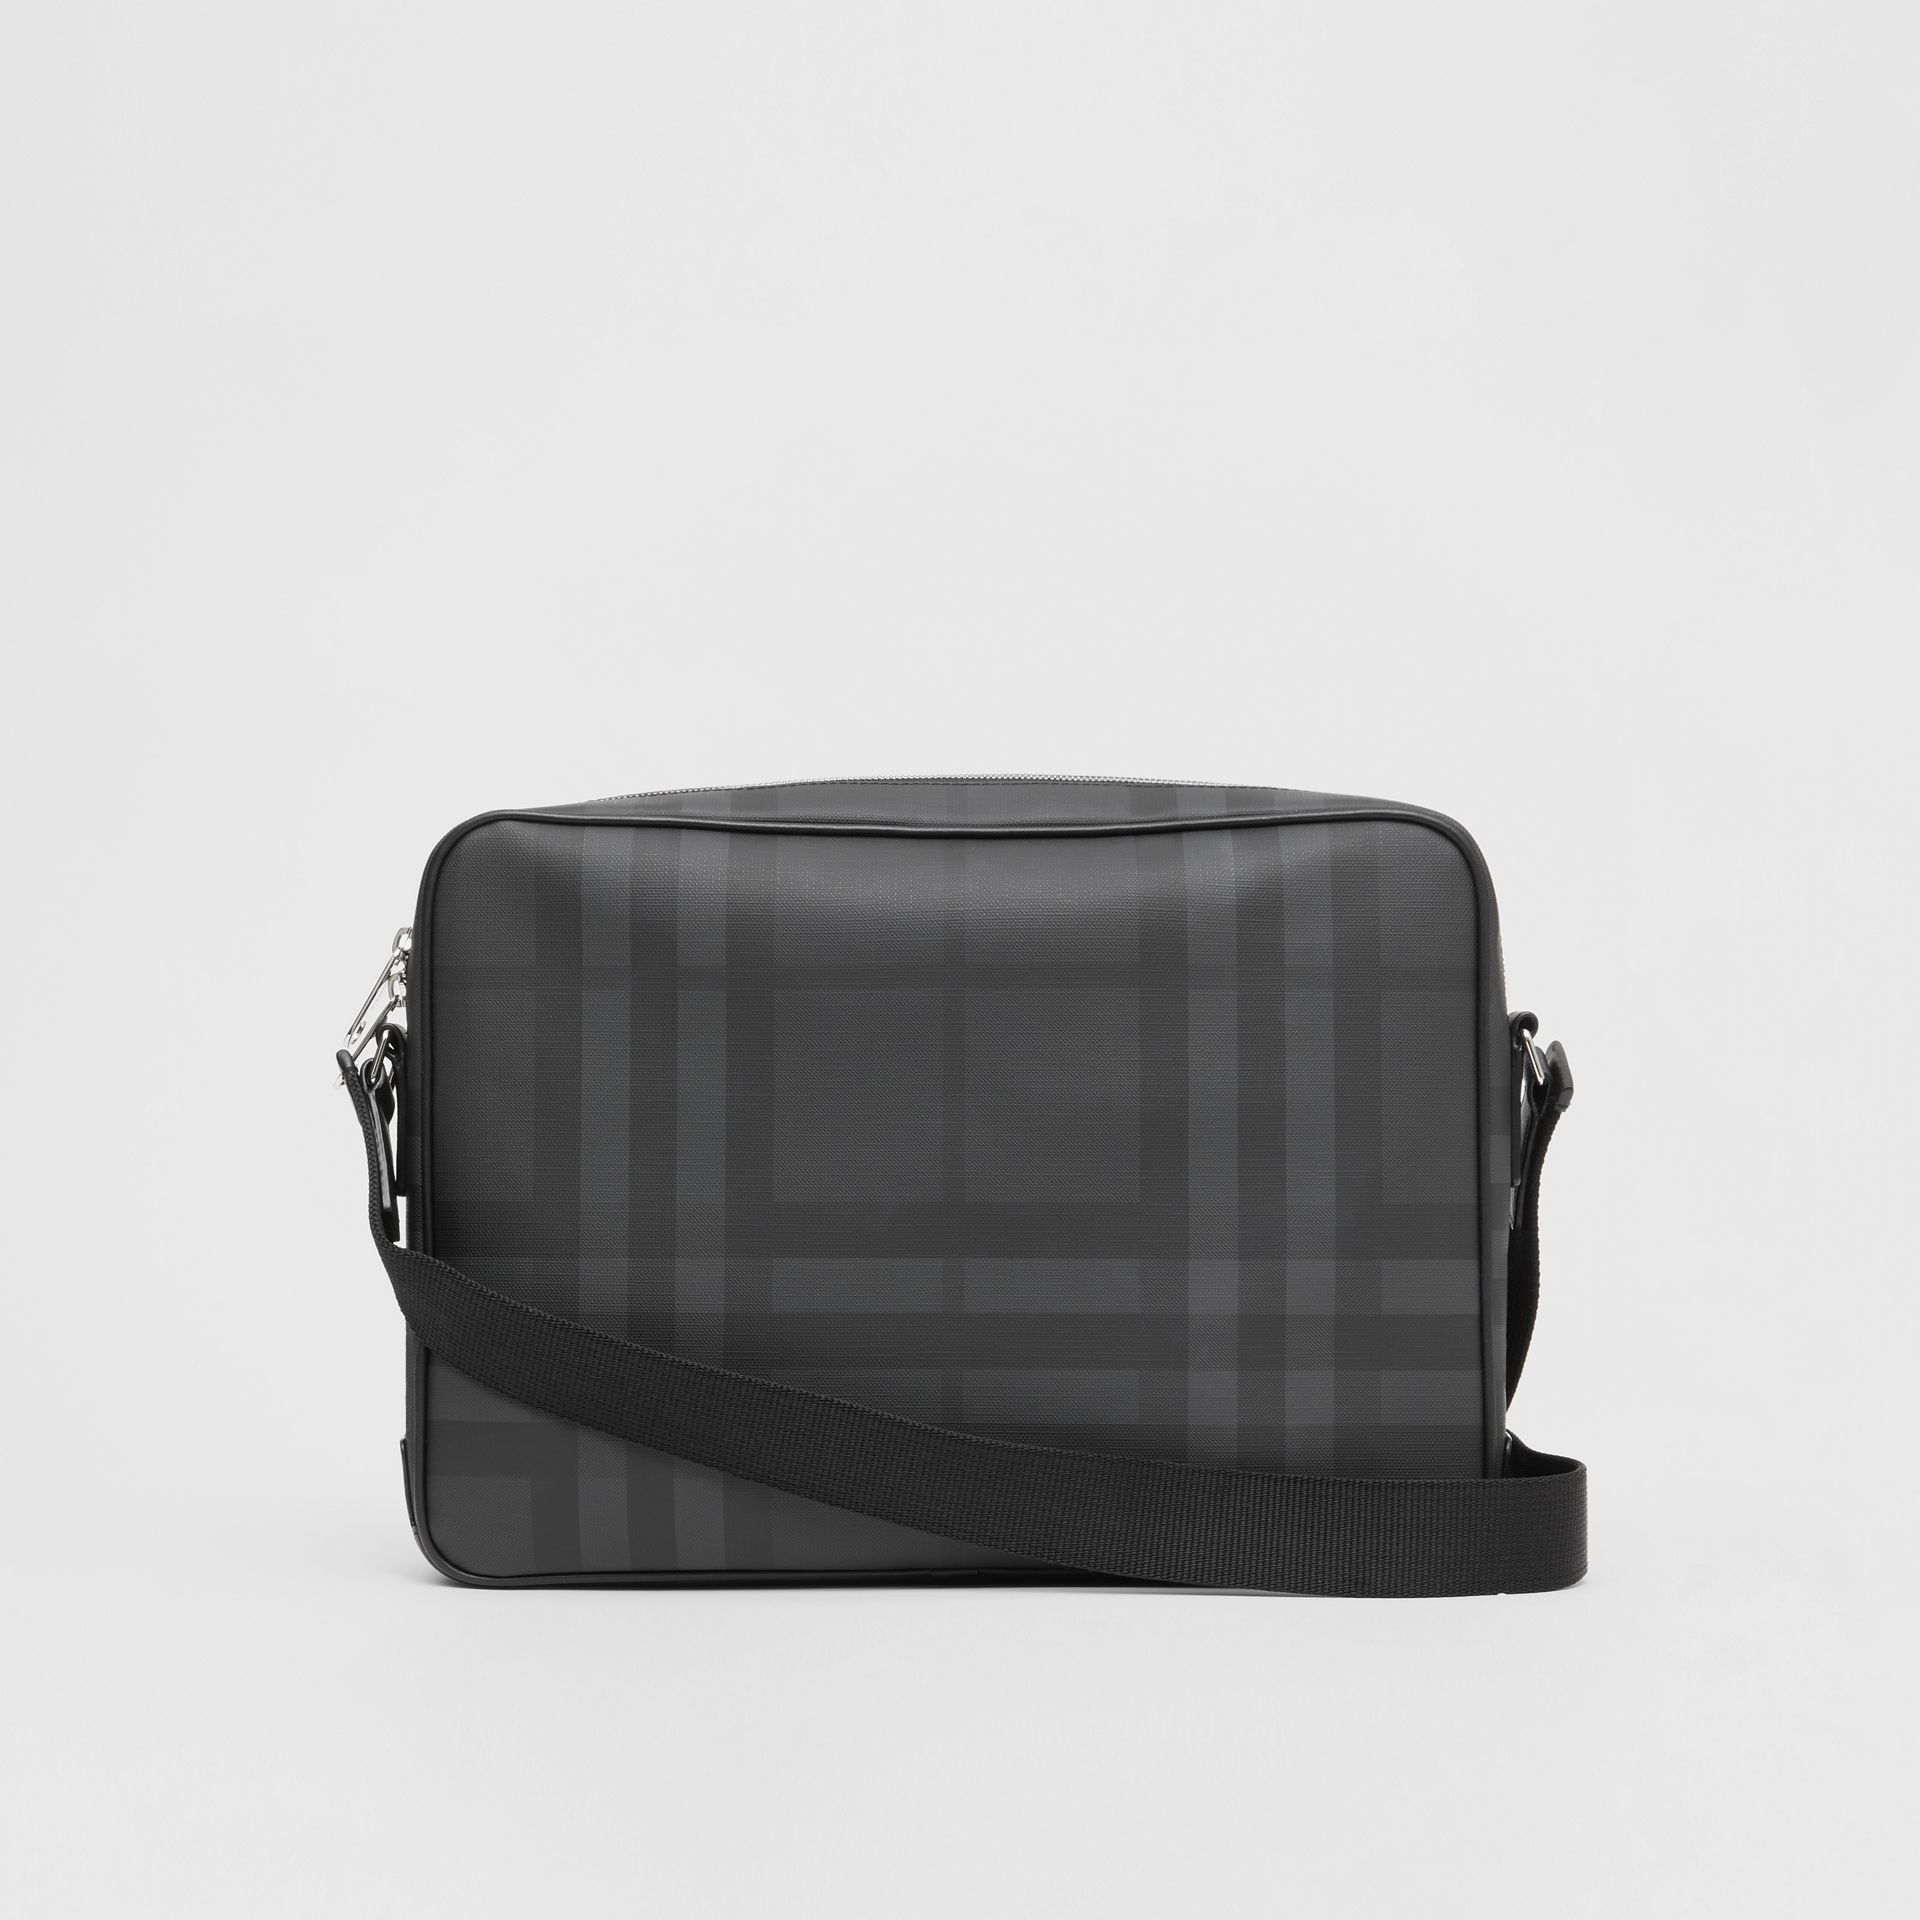 London Check and Leather Messenger Bag in Dark Charcoal - Men | Burberry - gallery image 7